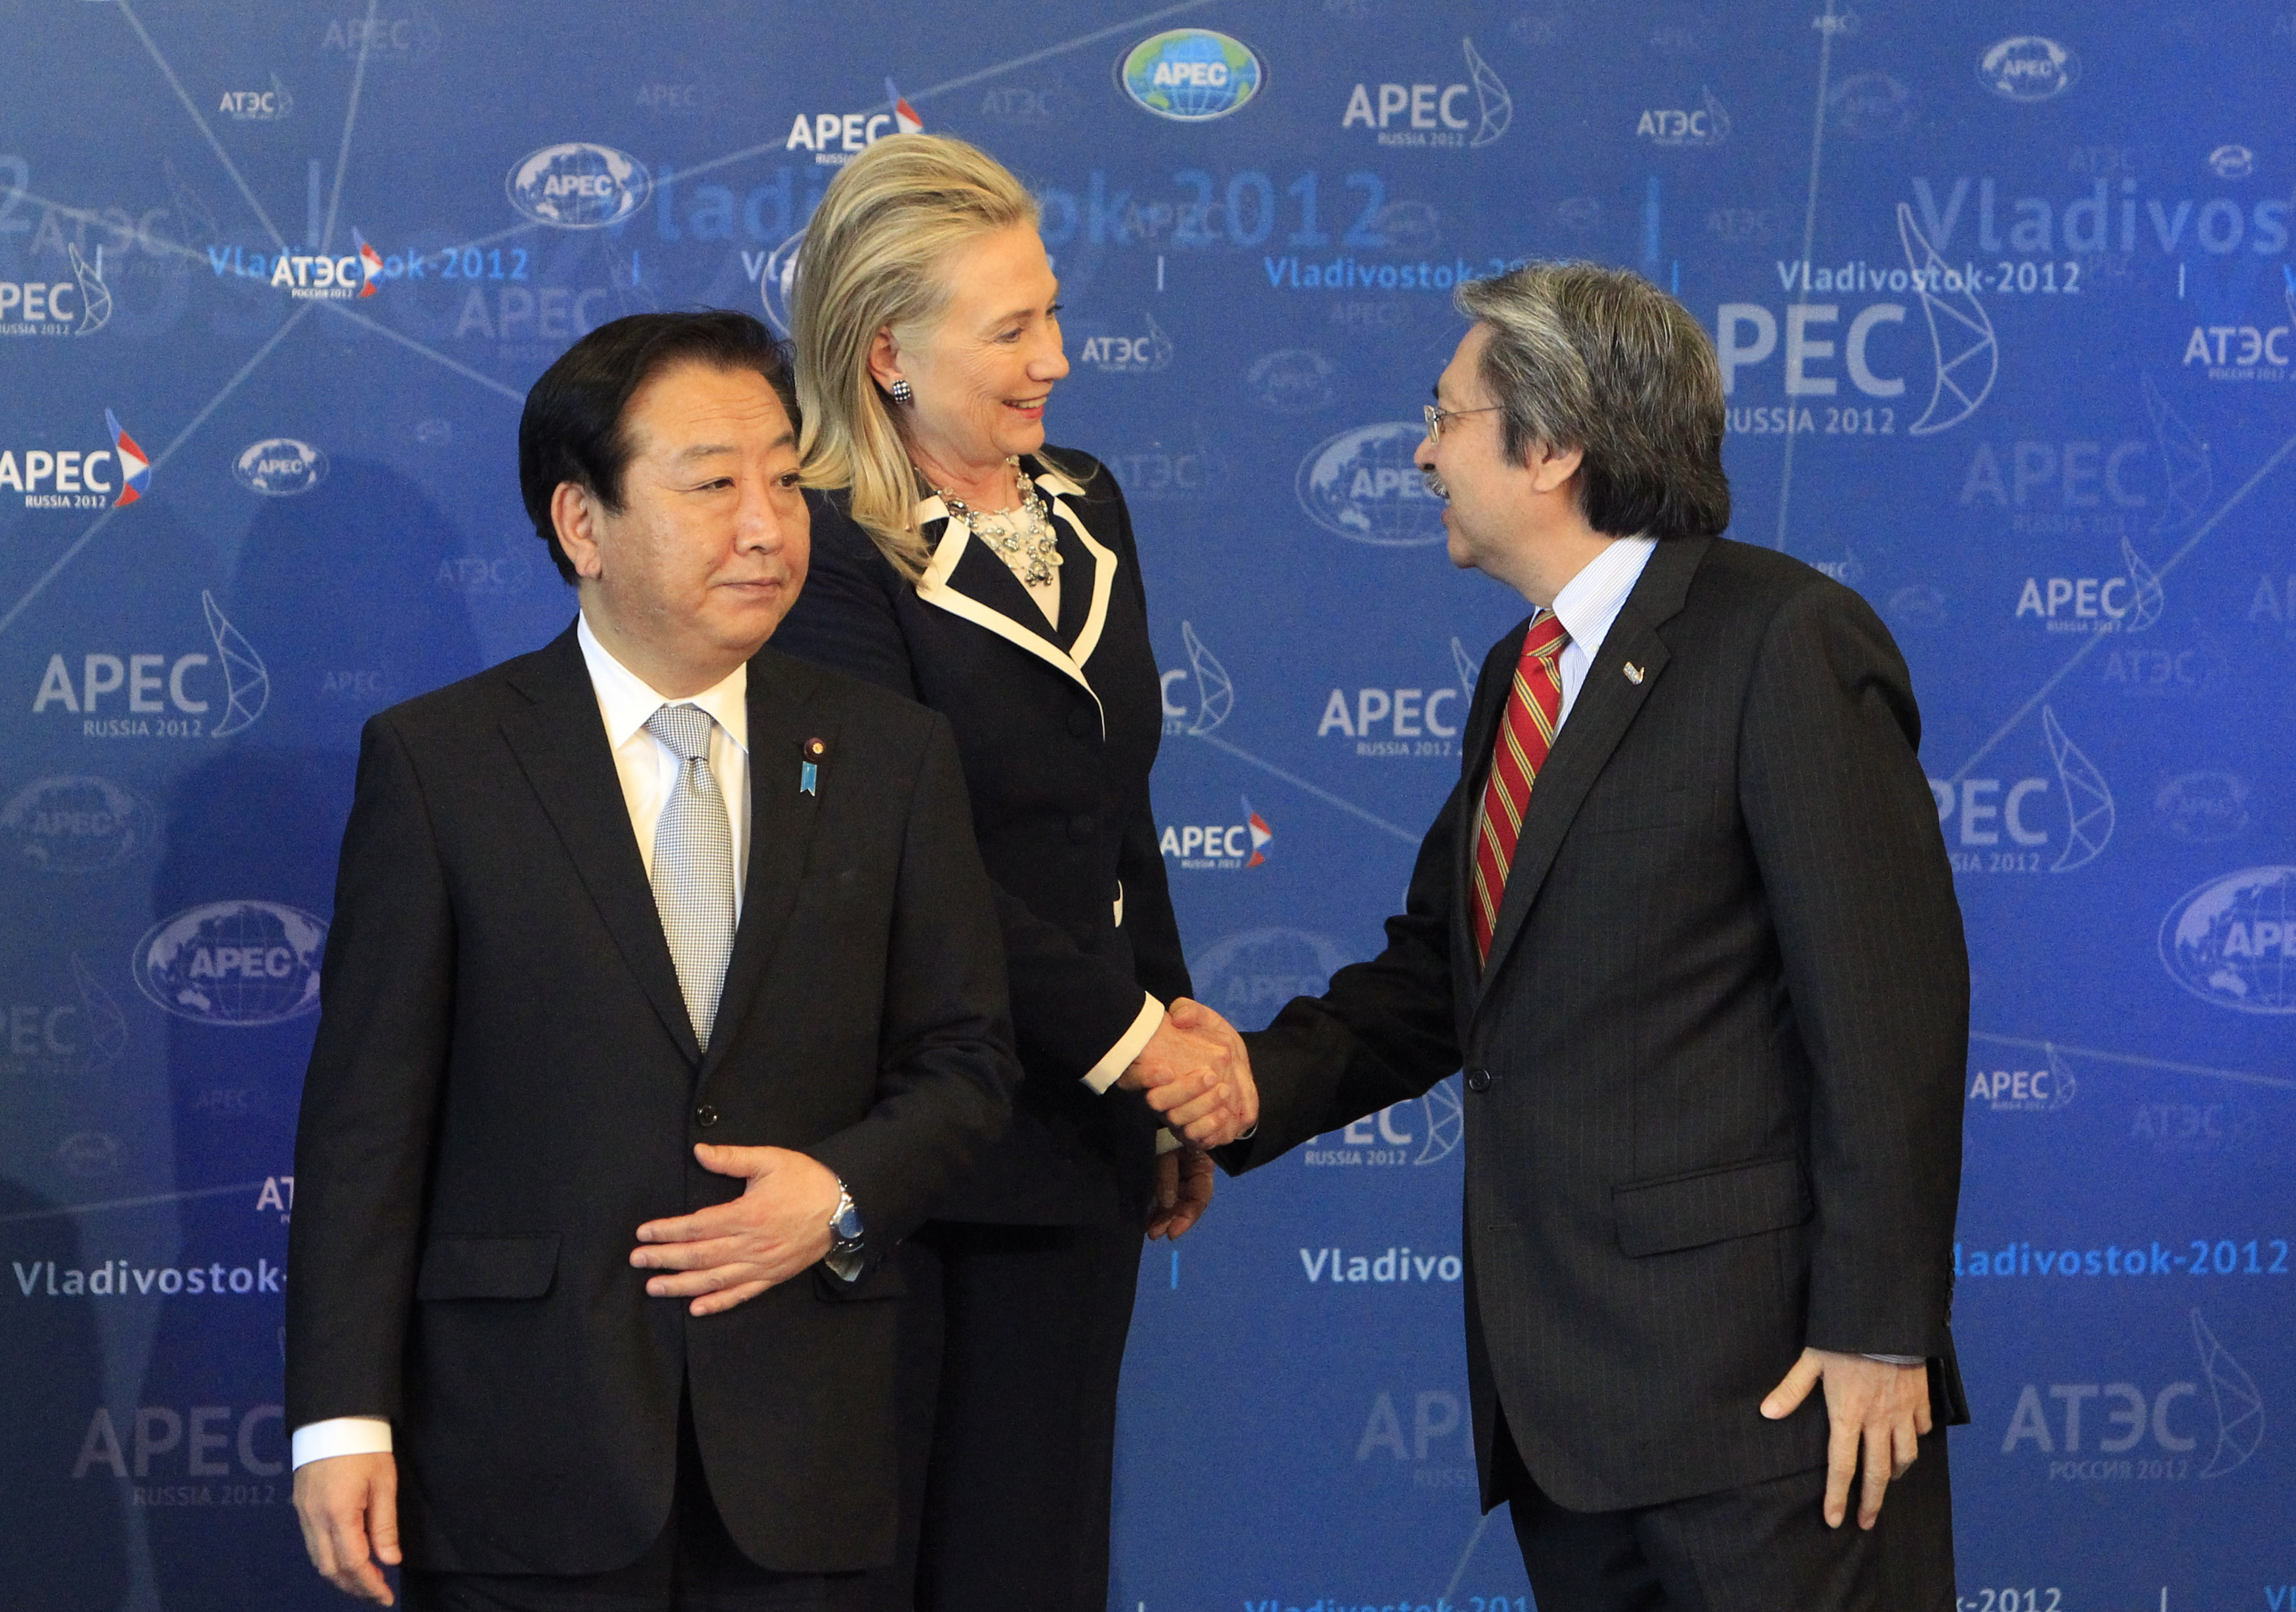 U.S. Secretary of State Hillary Clinton shakes hands with Hong Kong's Financial Secretary John Tsang as Japan's Prime Minister Yoshihiko Noda looks on at the Asia-Pacific Economic Cooperation Summit in Vladivostok, Russia, on Sept. 9, 2012